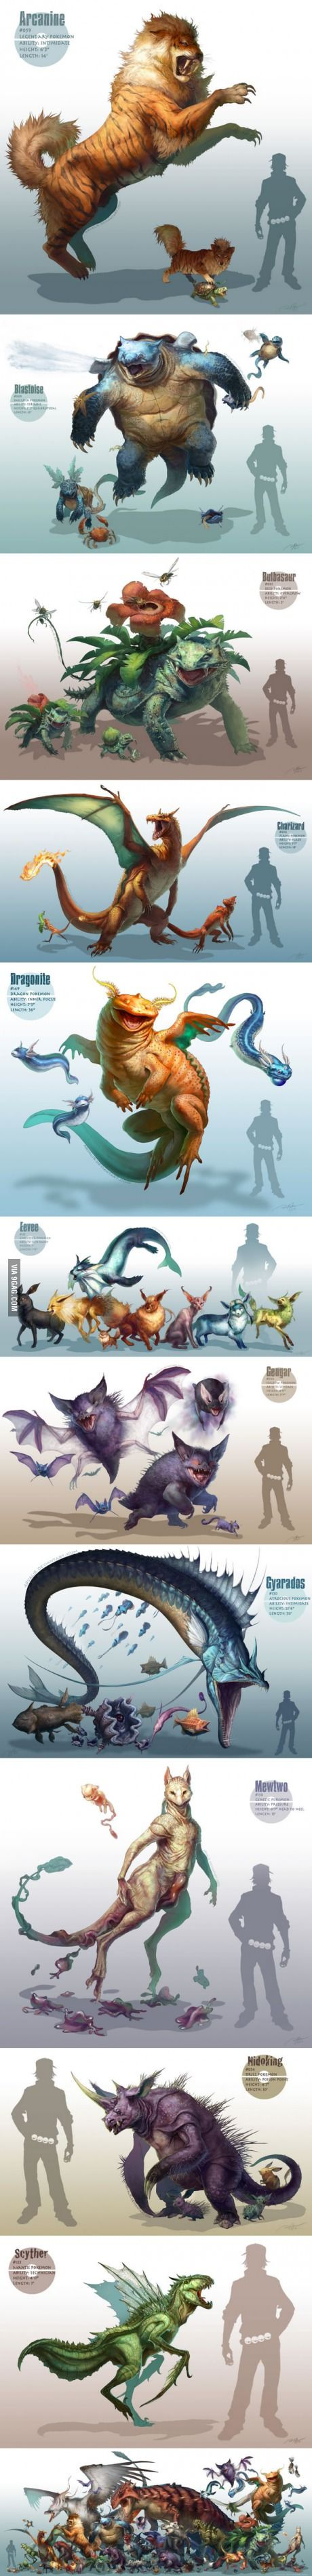 Realistic Pokemon the only one I think should be a bit different is Archanine cause he looks more like a fox than a wolf.- BatXan